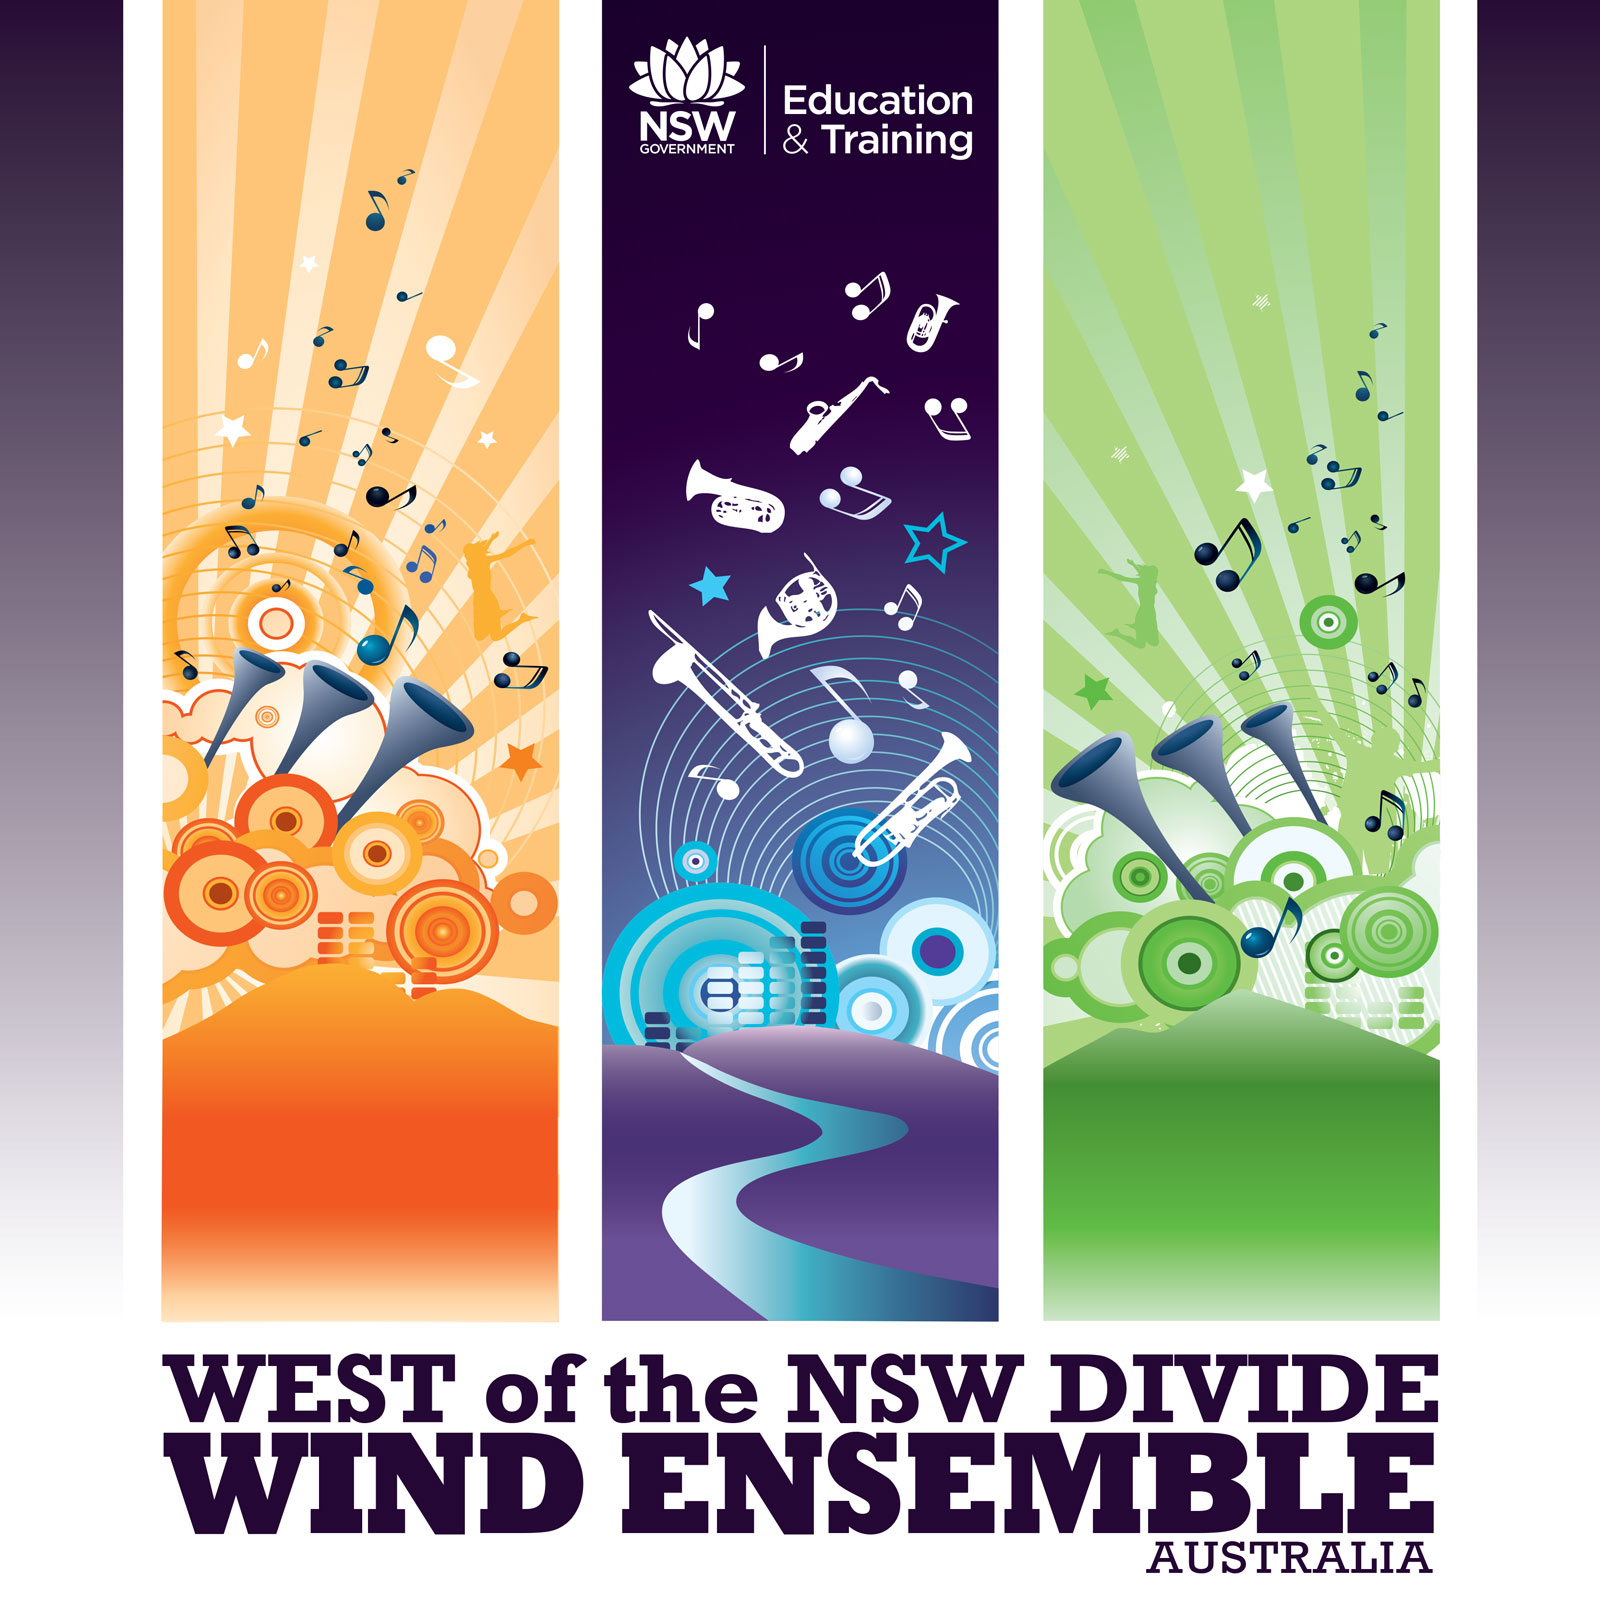 West of the NSW Divide Wind Ensemble